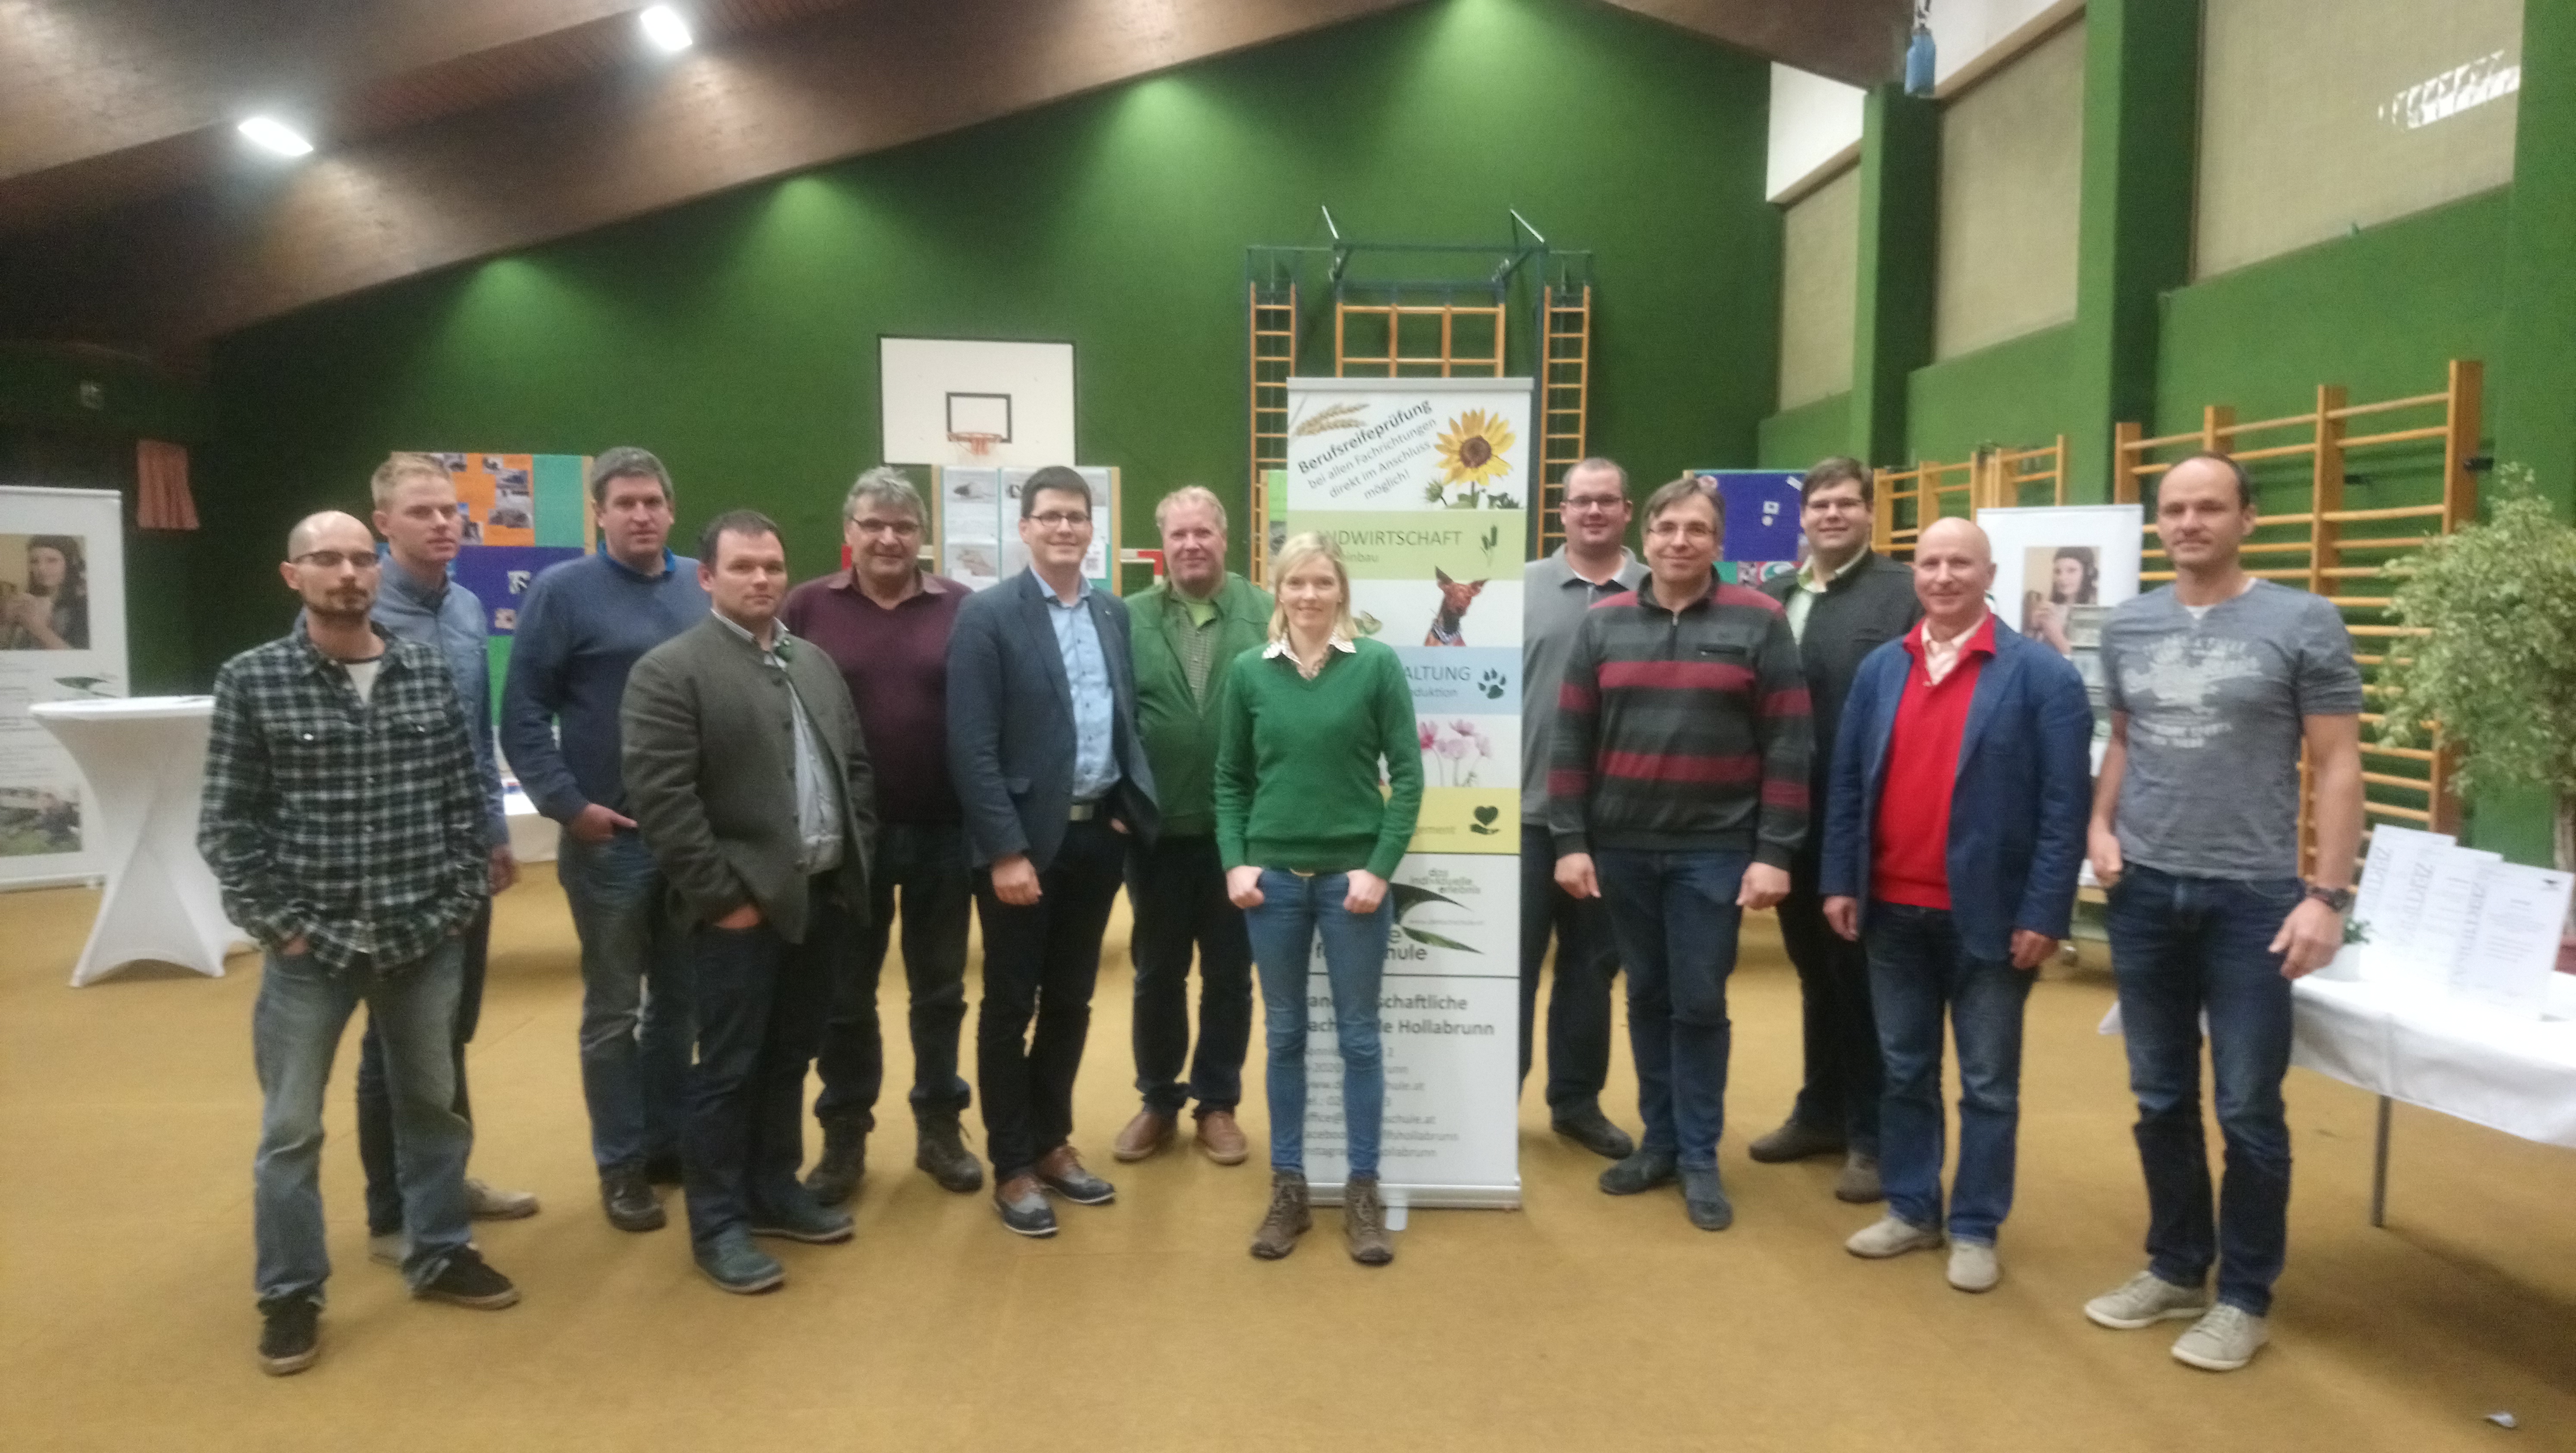 SHui focus group with farmers in Austria